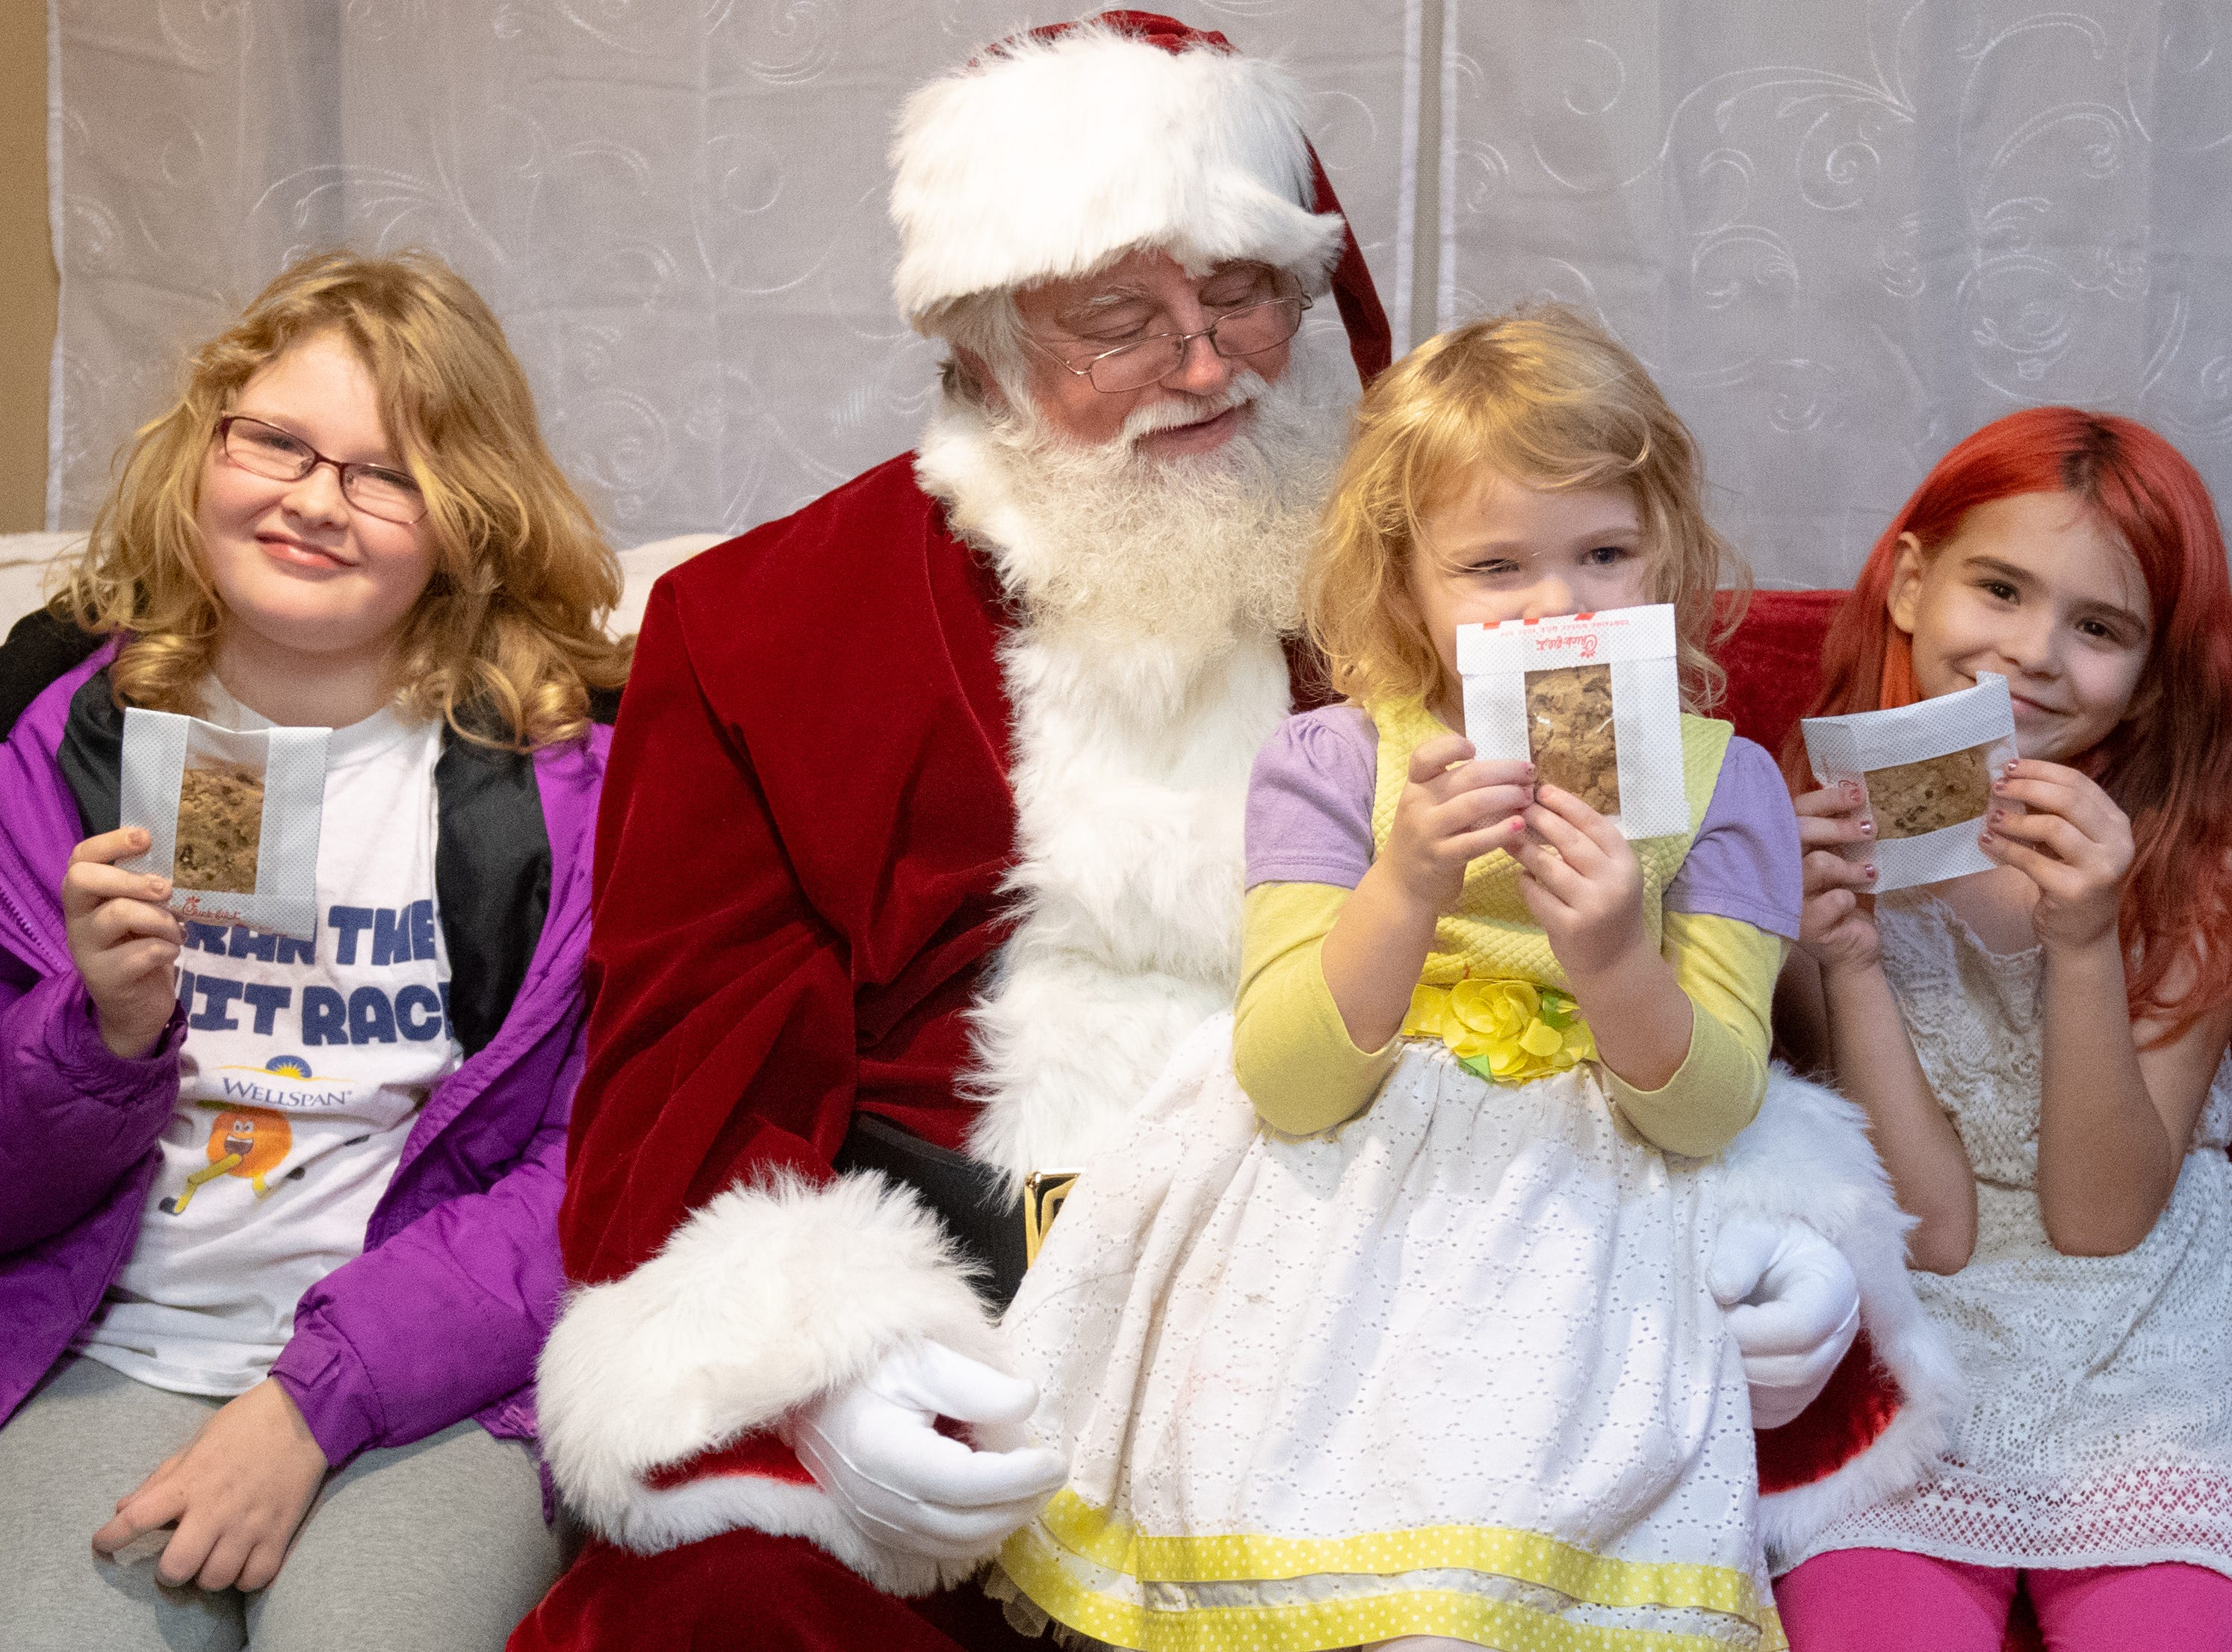 Sisters (left to right) Elizabeth, 9, Kimberly, 4, and Bethine Henwood, 7, show off their sweet treats during the Dinner with Santa and Santa Cow event, December 19, 2018.